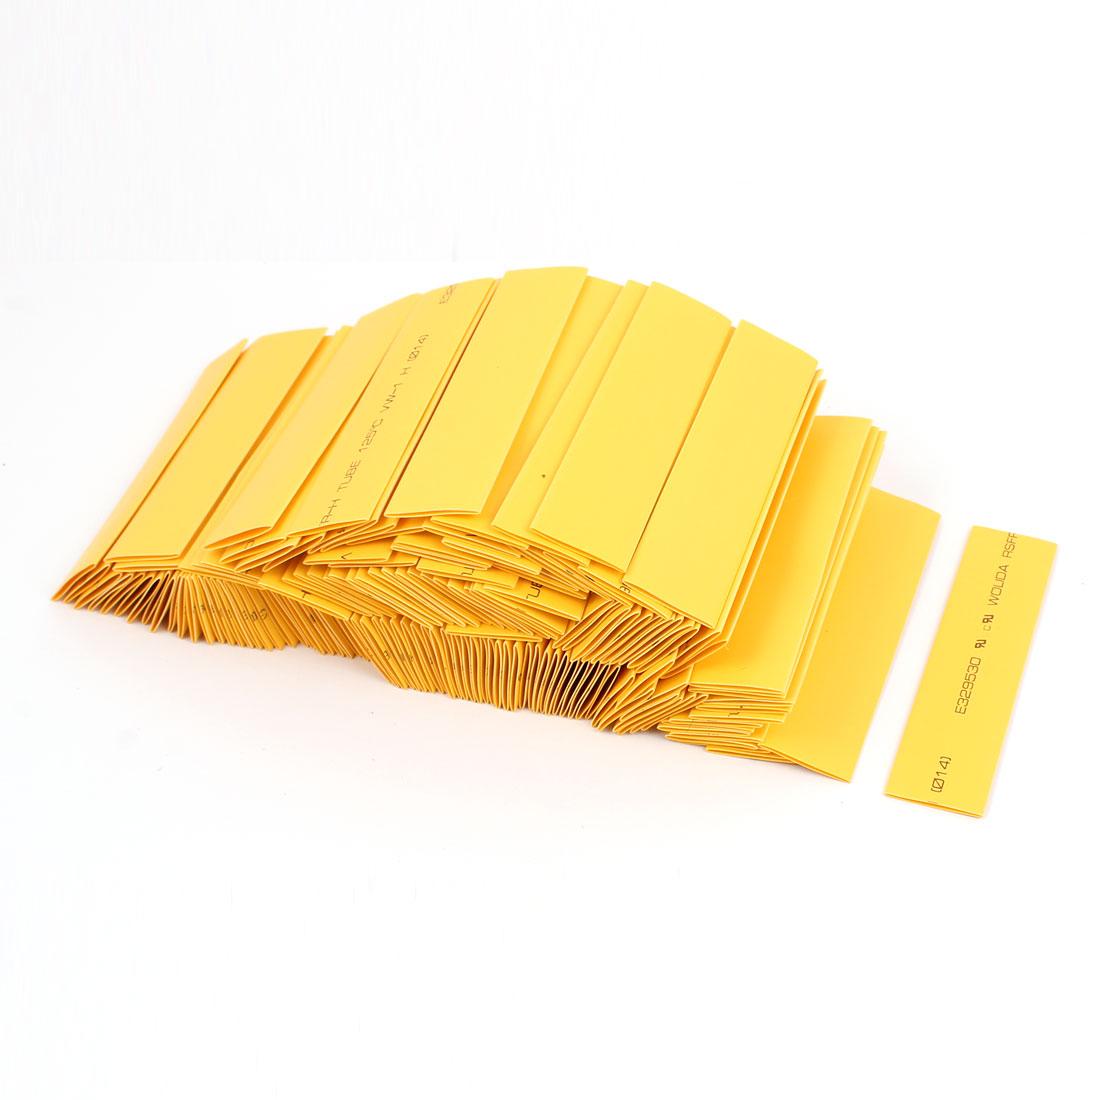 14mm Dia Polyolefin 2:1 Heat Shrink Tubing Shrinkable Tube Yellow 10cm Long 150pcs